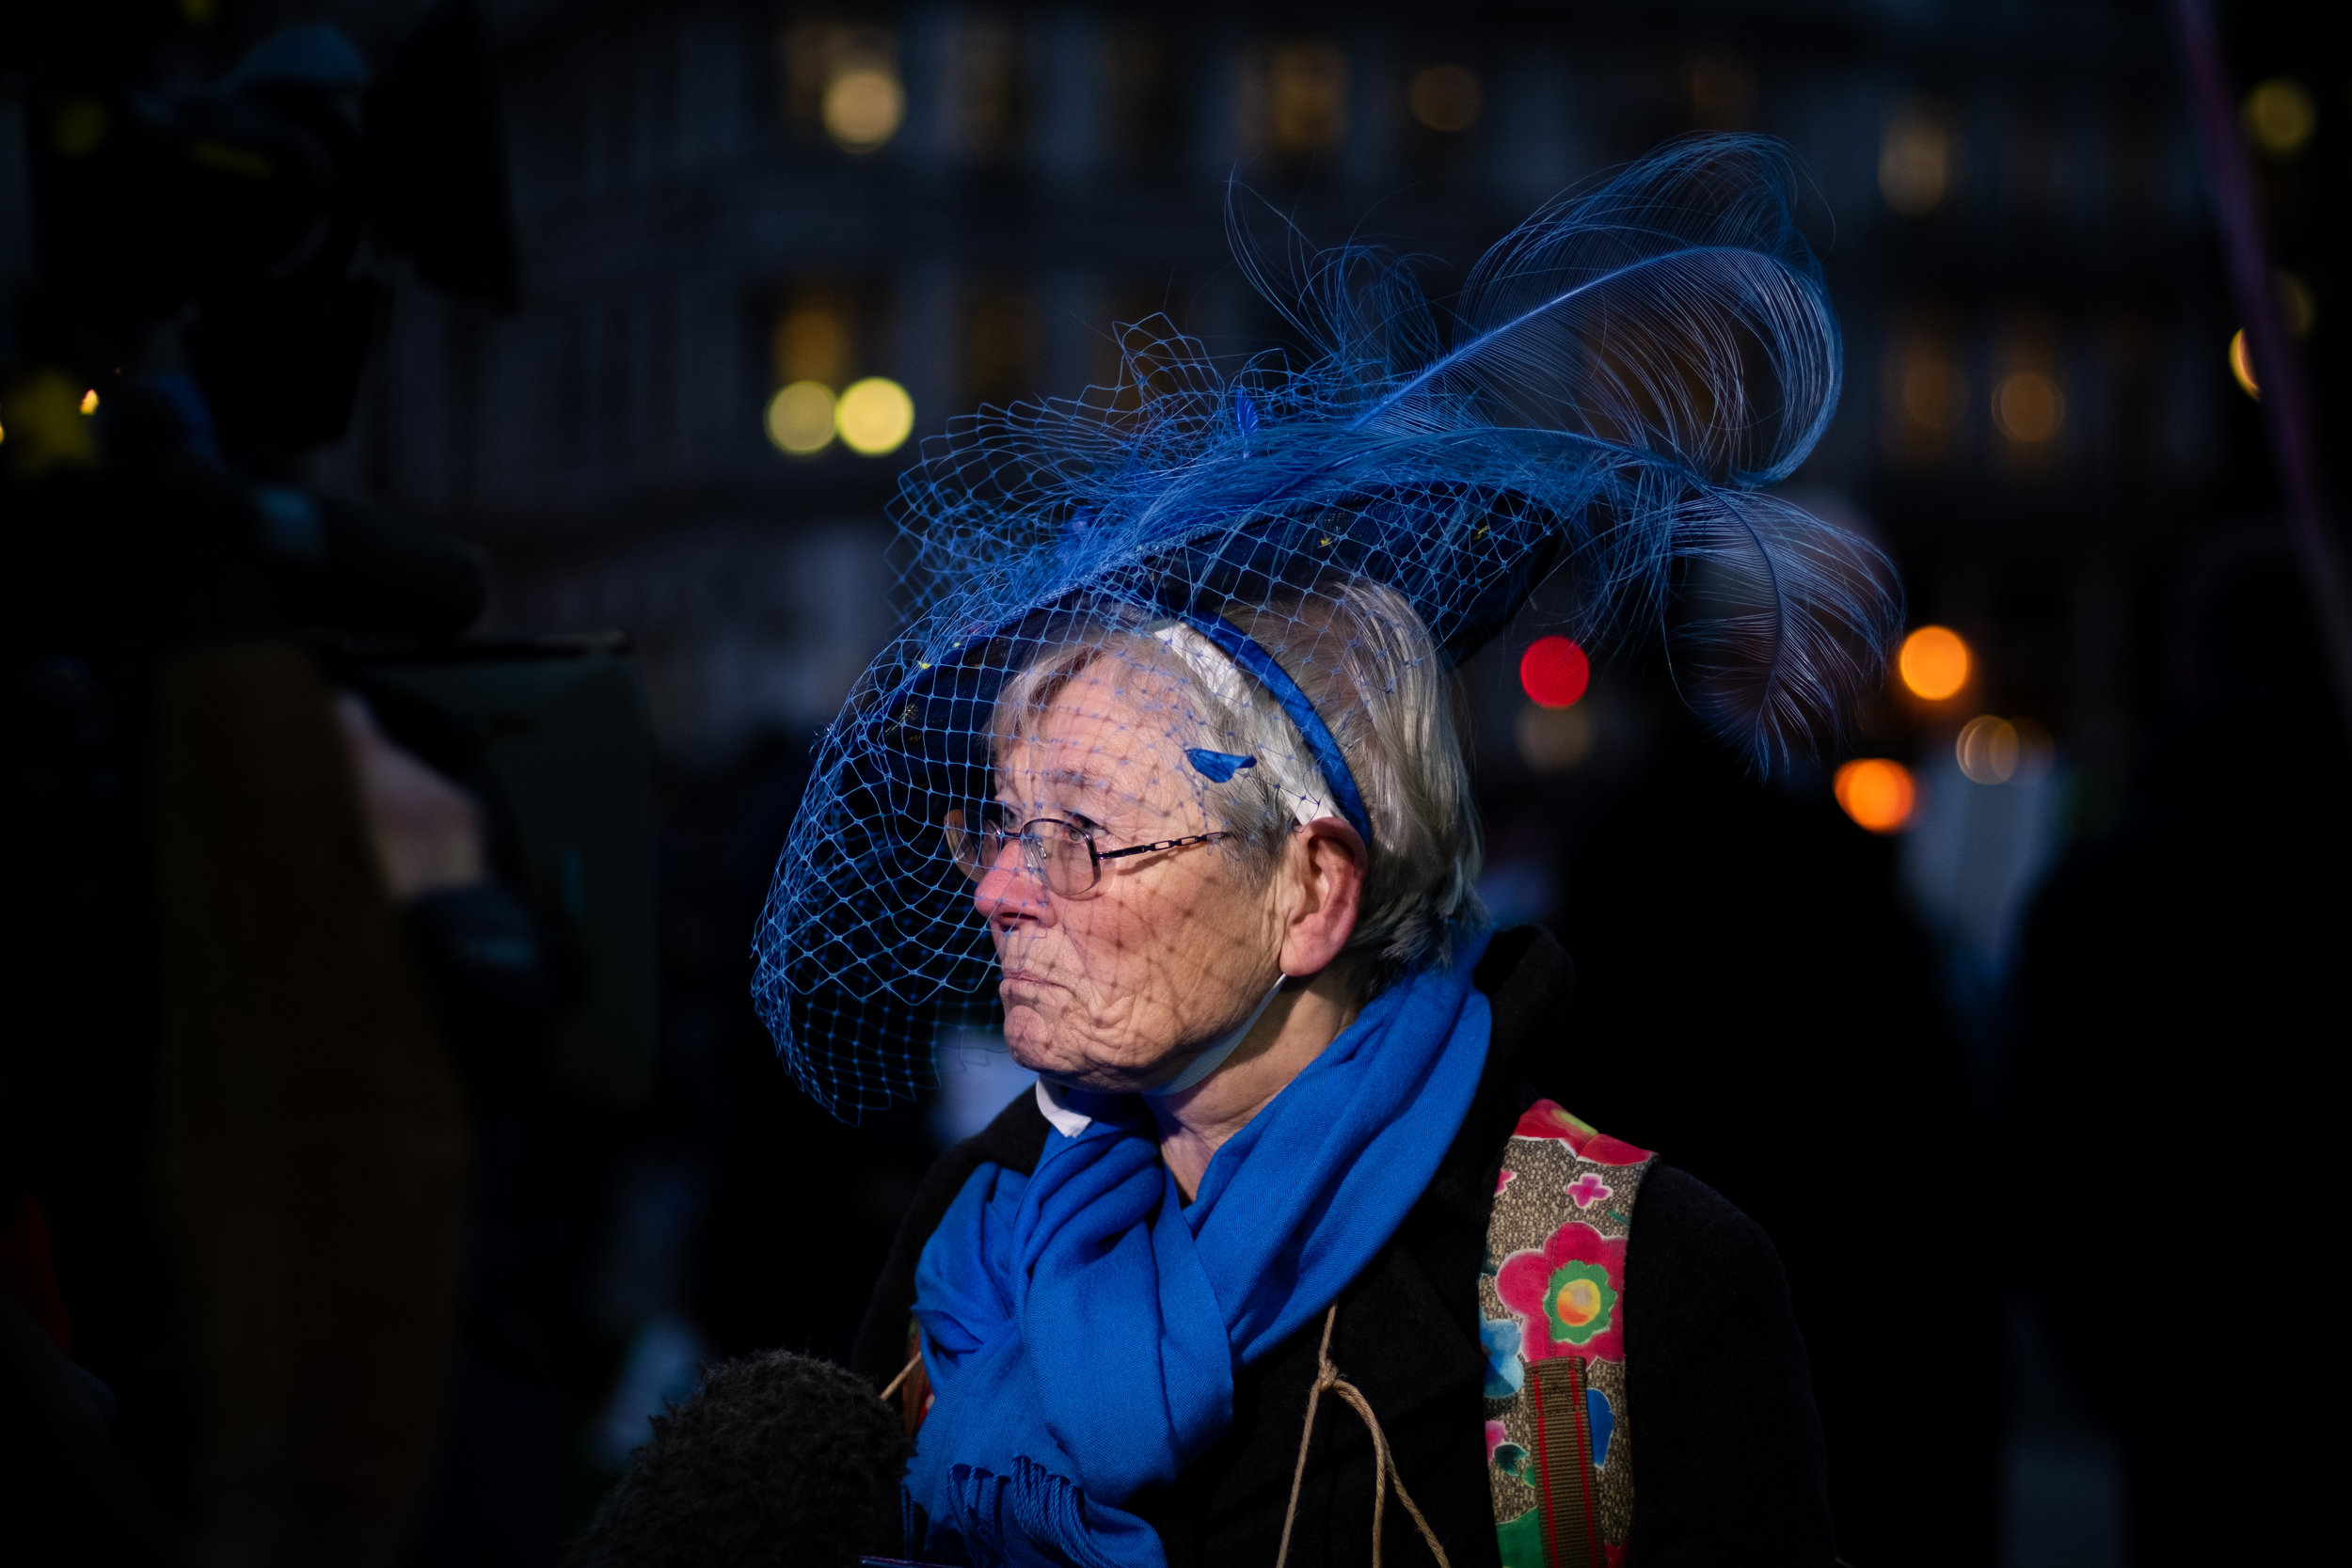 While the Final Vote on Theresa`s May Brexit Deal is ongoing, protesters demonstrate outside the House of Parliament, on the 15th January 2019, in London, UK.